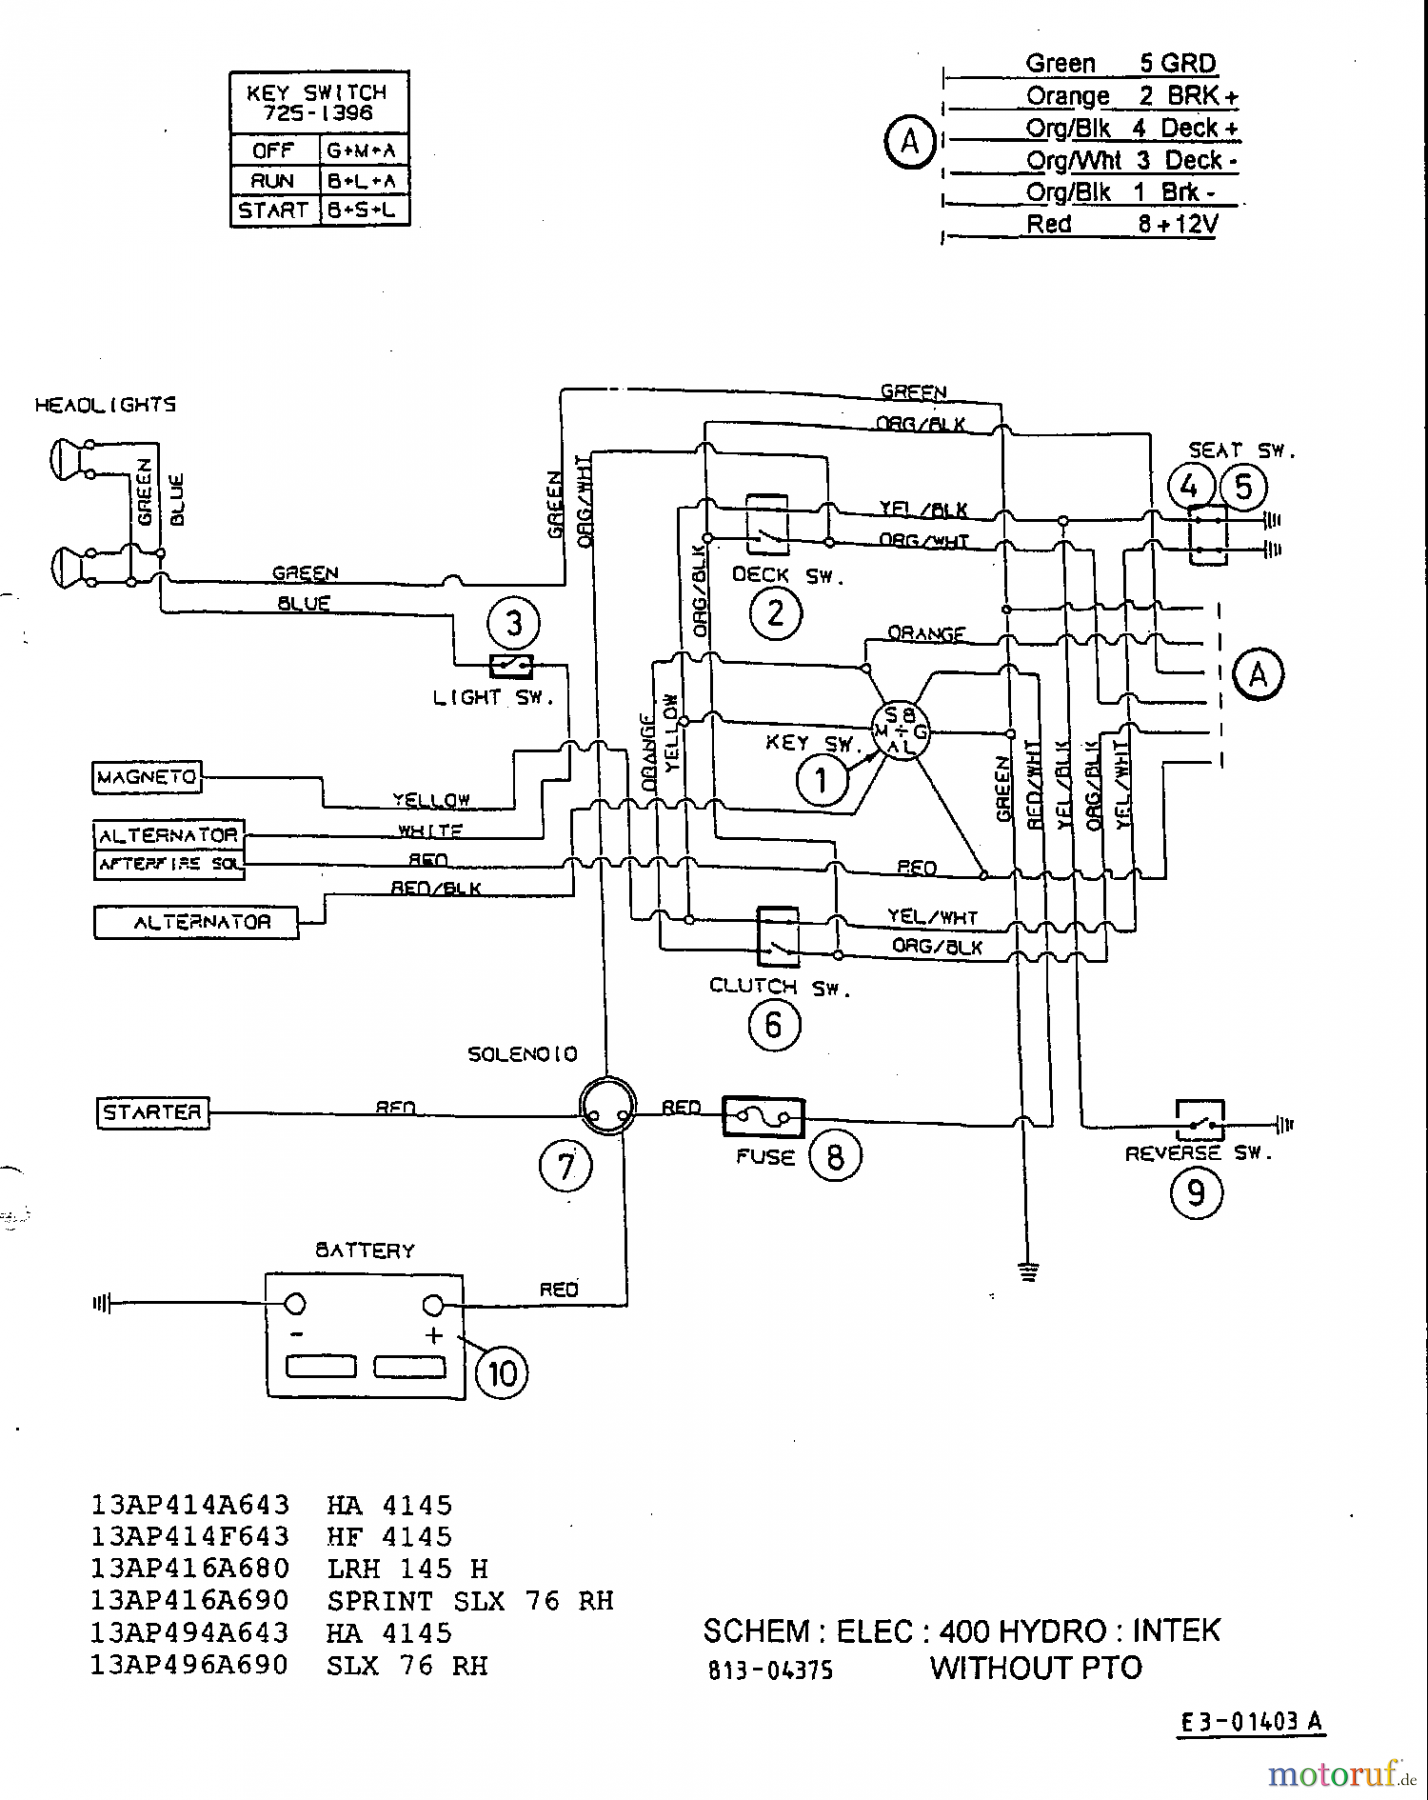 mtd riding mower wiring diagram with yard machine on mtd ride on rh pinterest com Yard Machine Riding Mower Wiring Diagram MTD Riding Lawn Mower Wiring Diagram